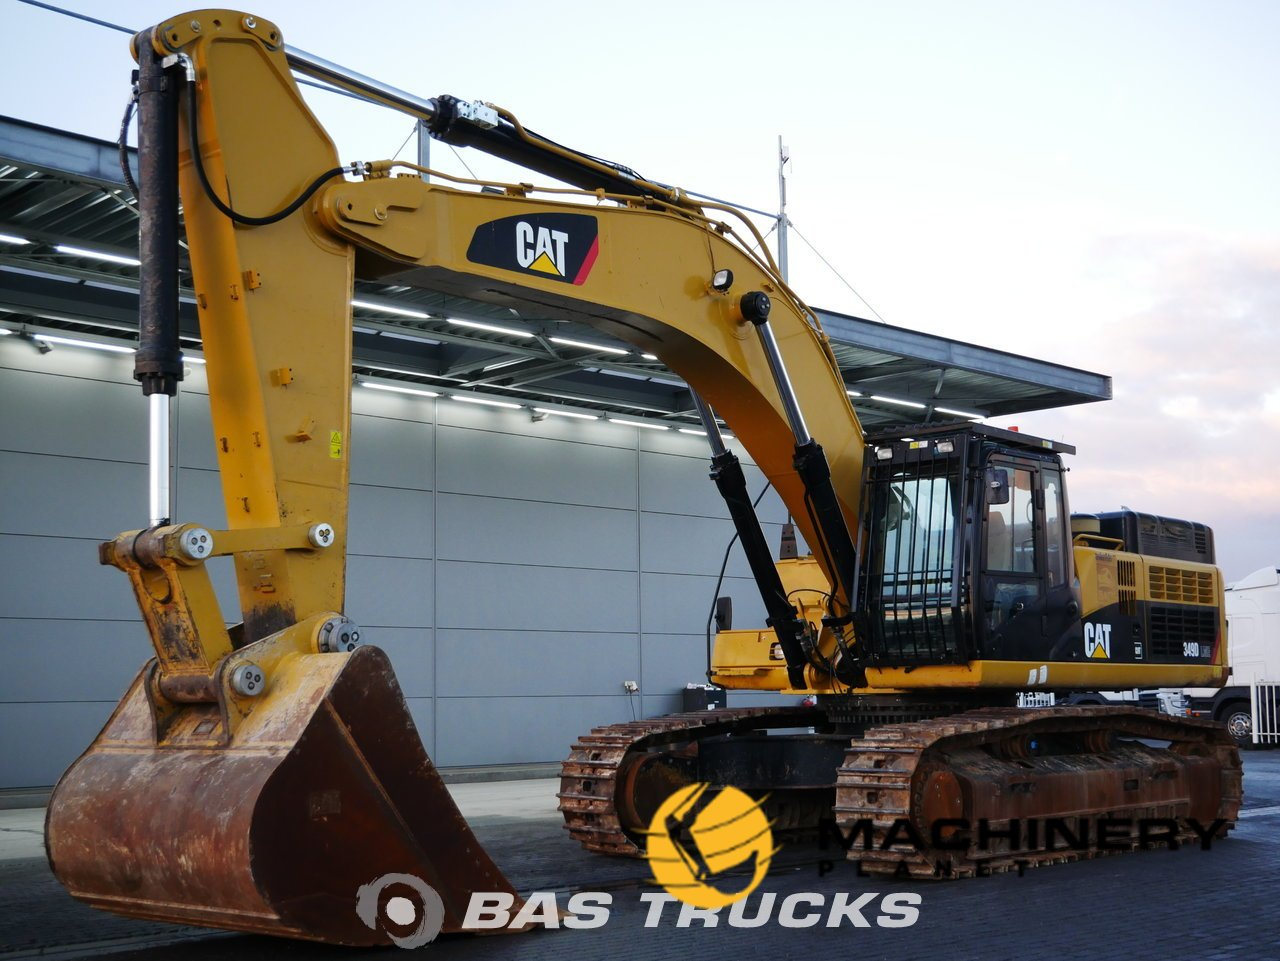 Used-Construction-equipment-Caterpillar-349D-LME-Track-2014_140361_1-1554112672955_5ca1e0a0e92ef-1.jpg